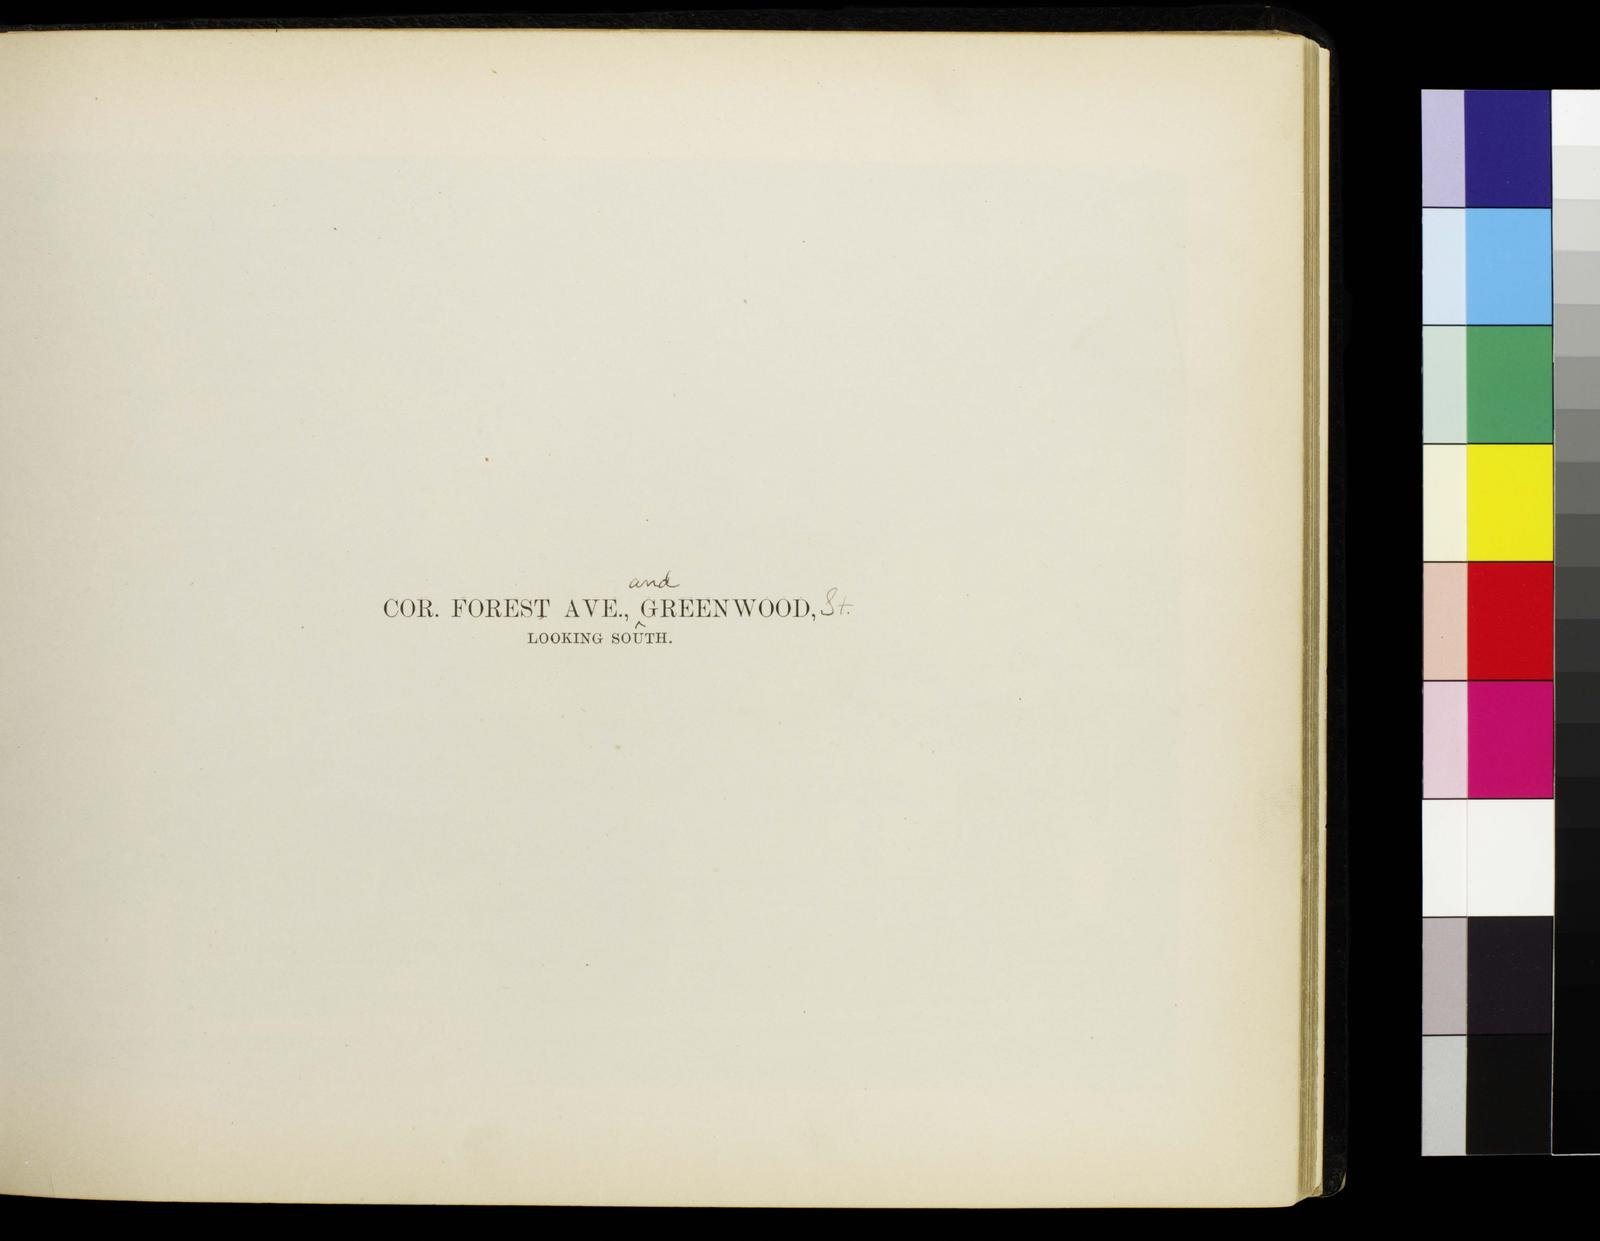 Photographic views of picturesque Evanston, state of Illinois. Cor. Forest Aveneue and Greenwood, looking south. Rectos